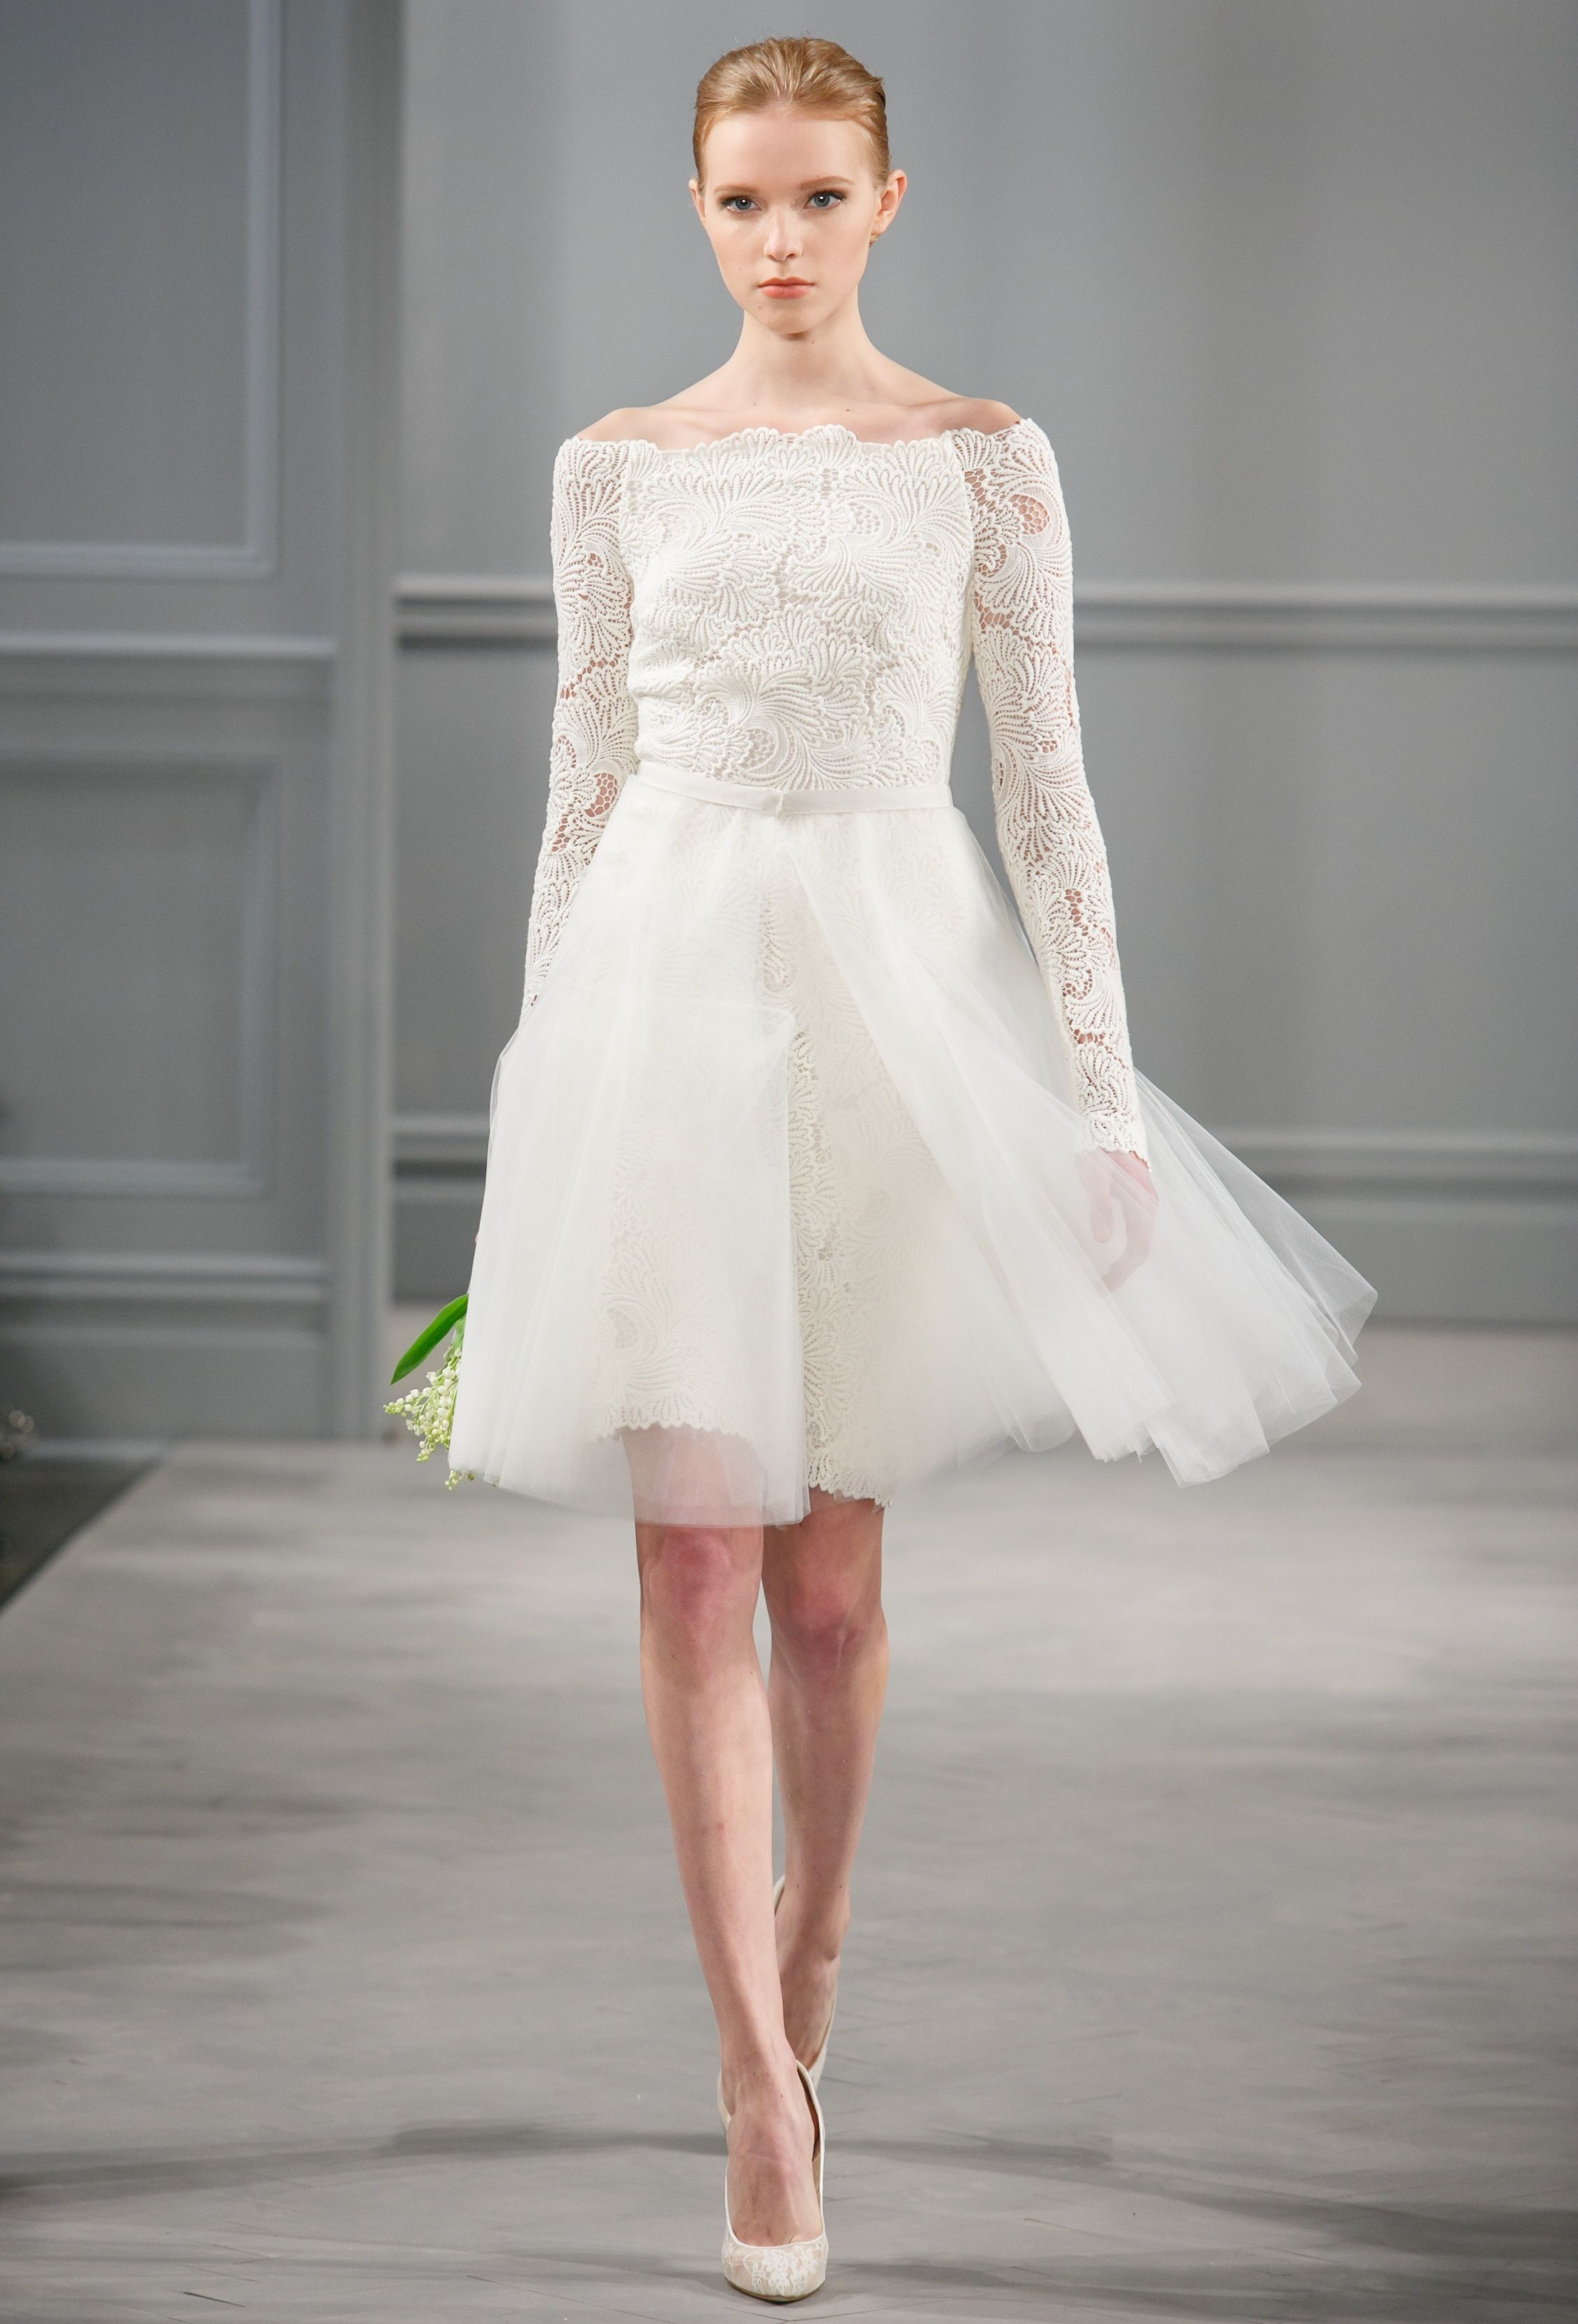 Monique Lhuillier Spring 2014 By Syphotography Wedding Dress In